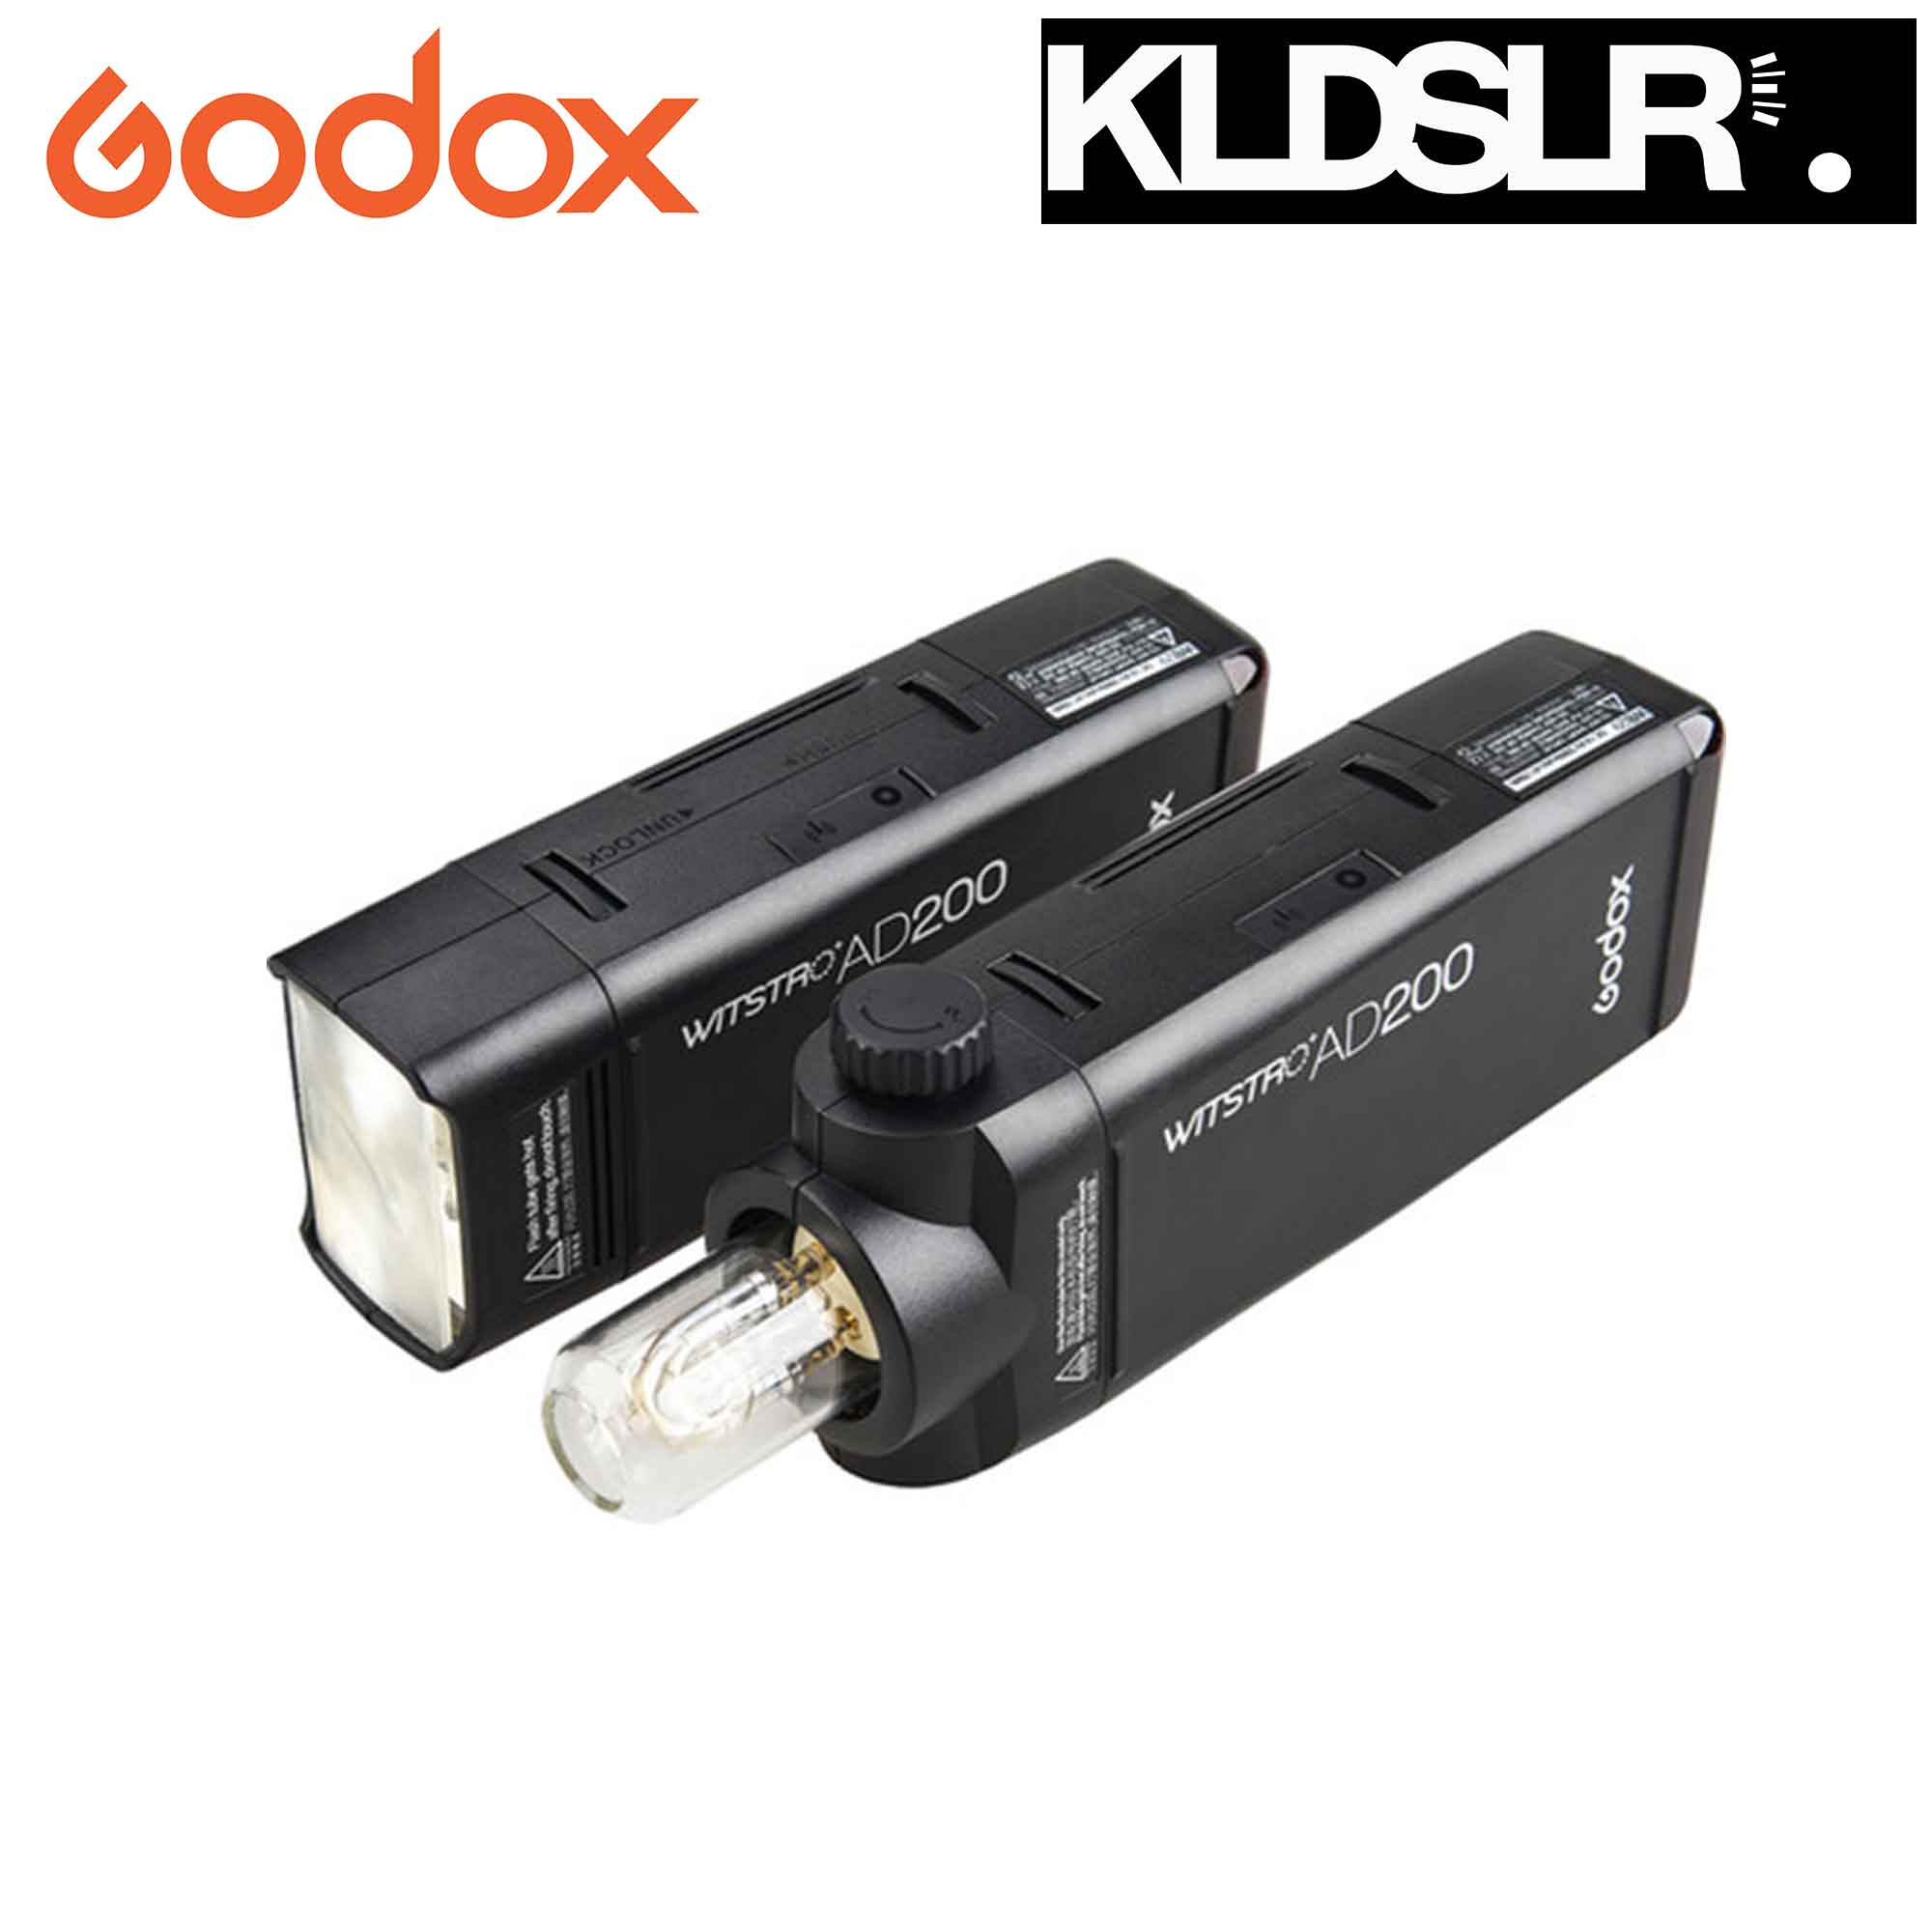 Save RM20! Godox AD200 TTL Pocket Flash